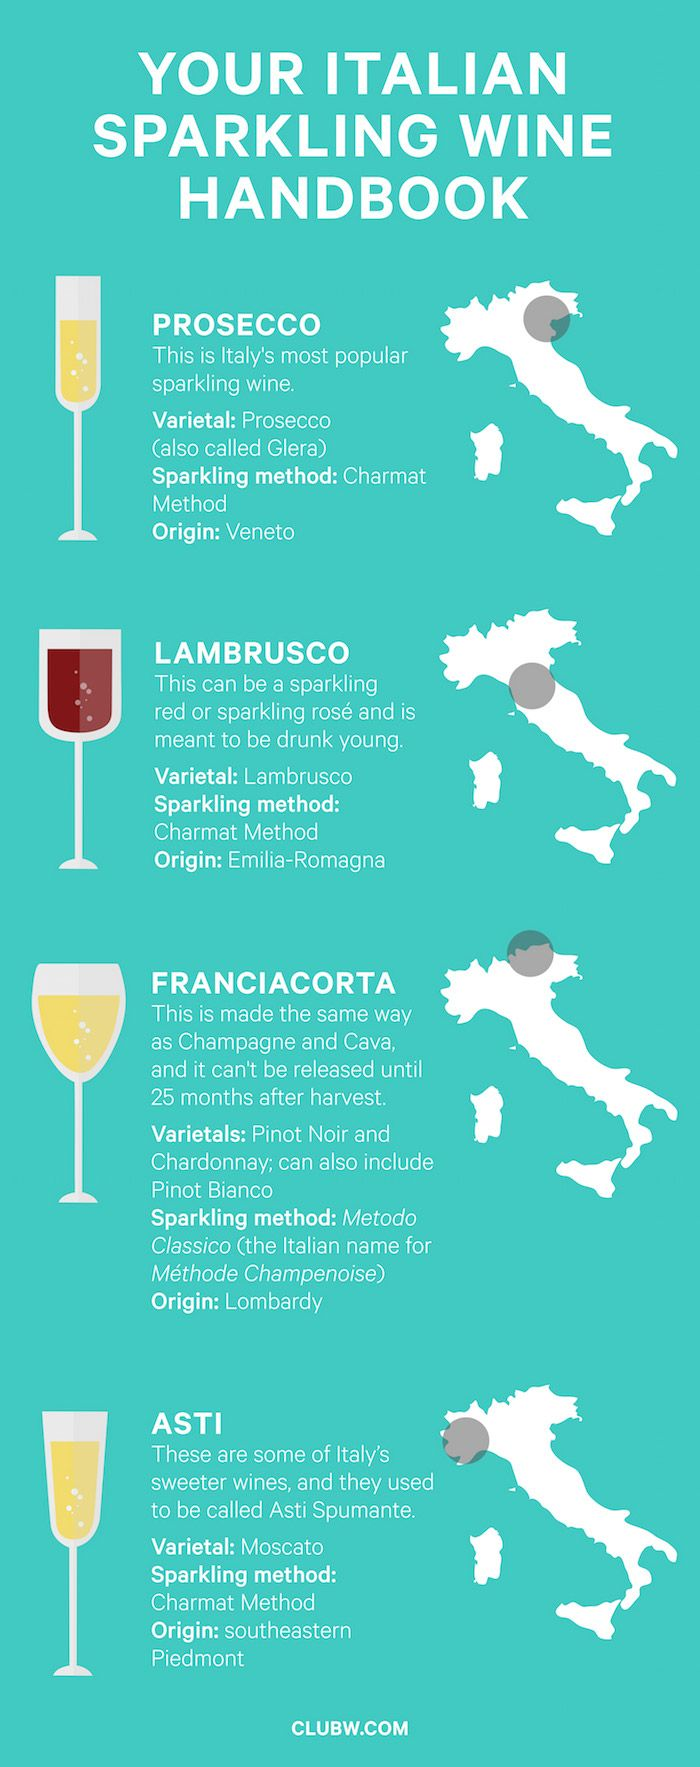 Frizzante? Spumante? // Your Italian Sparkling Wine Handbook - The Juice | Club W                                                                                                                                                                                 More